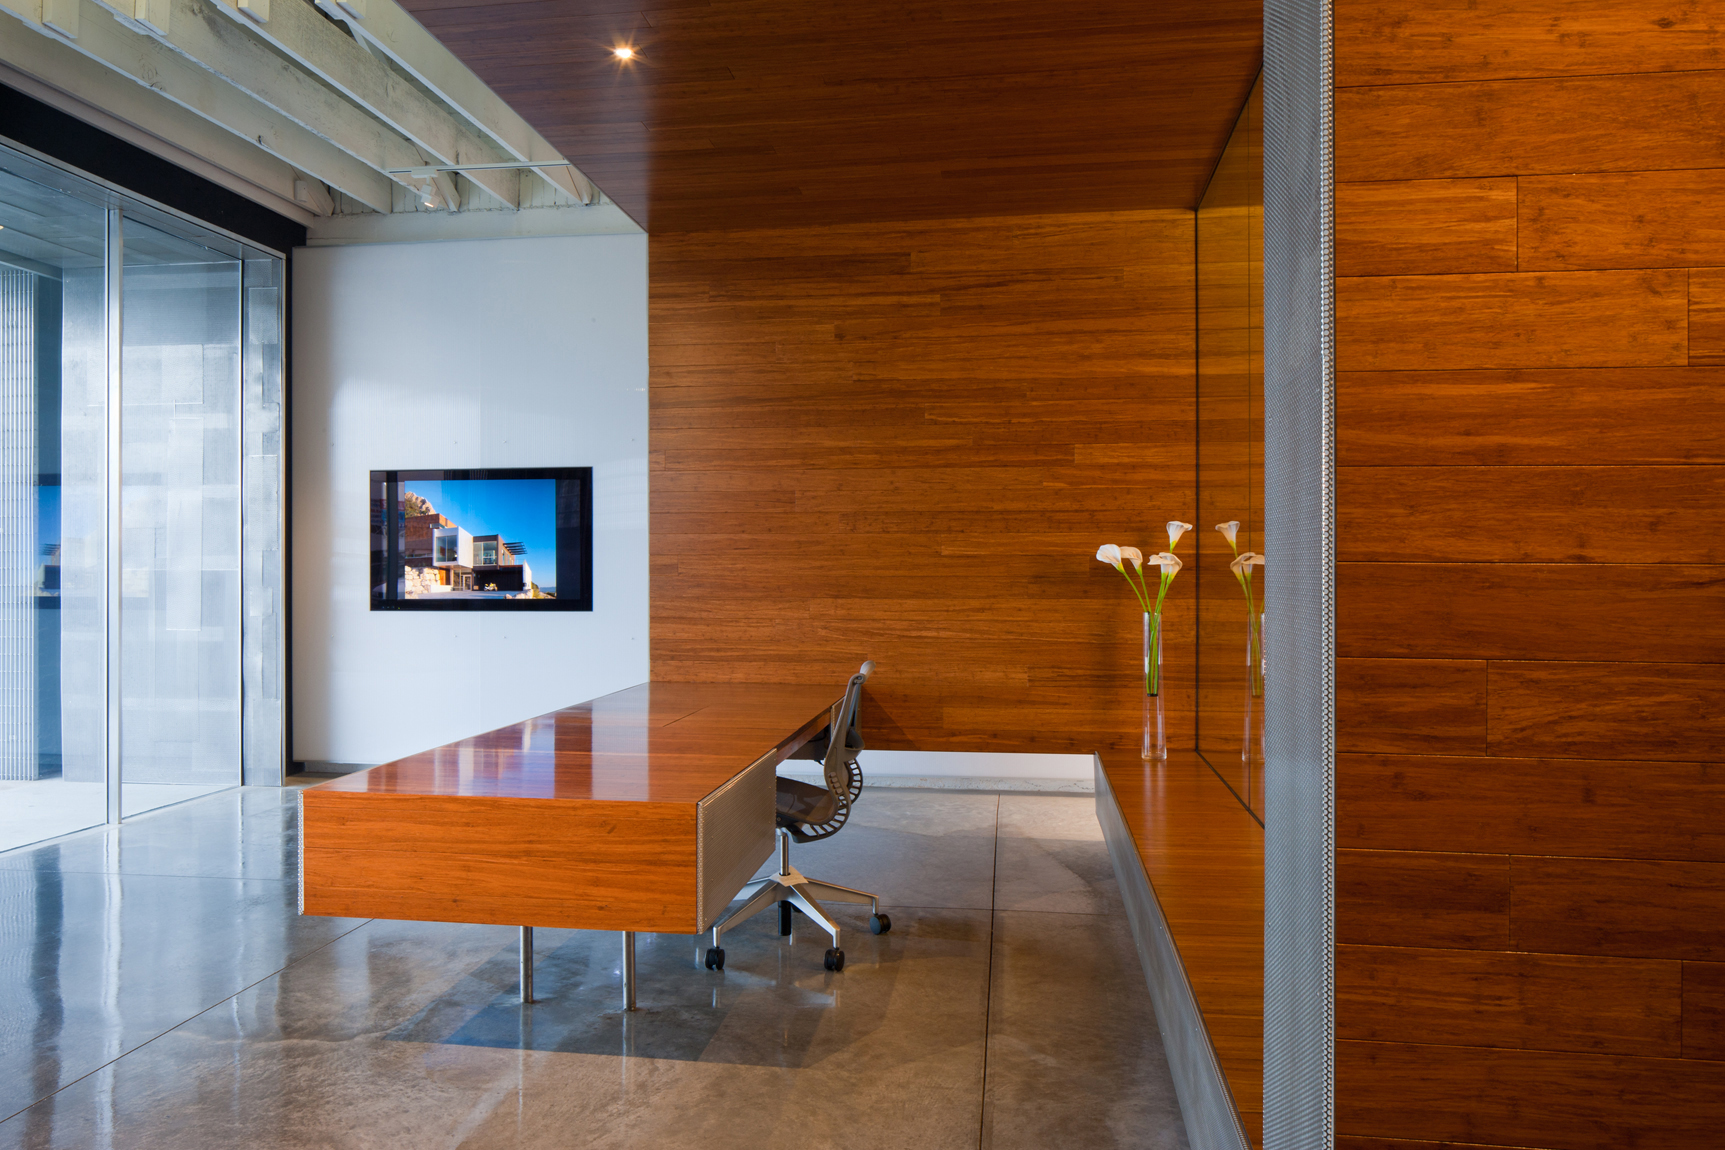 View of office conference room made of warm wood and glass with LED lights.